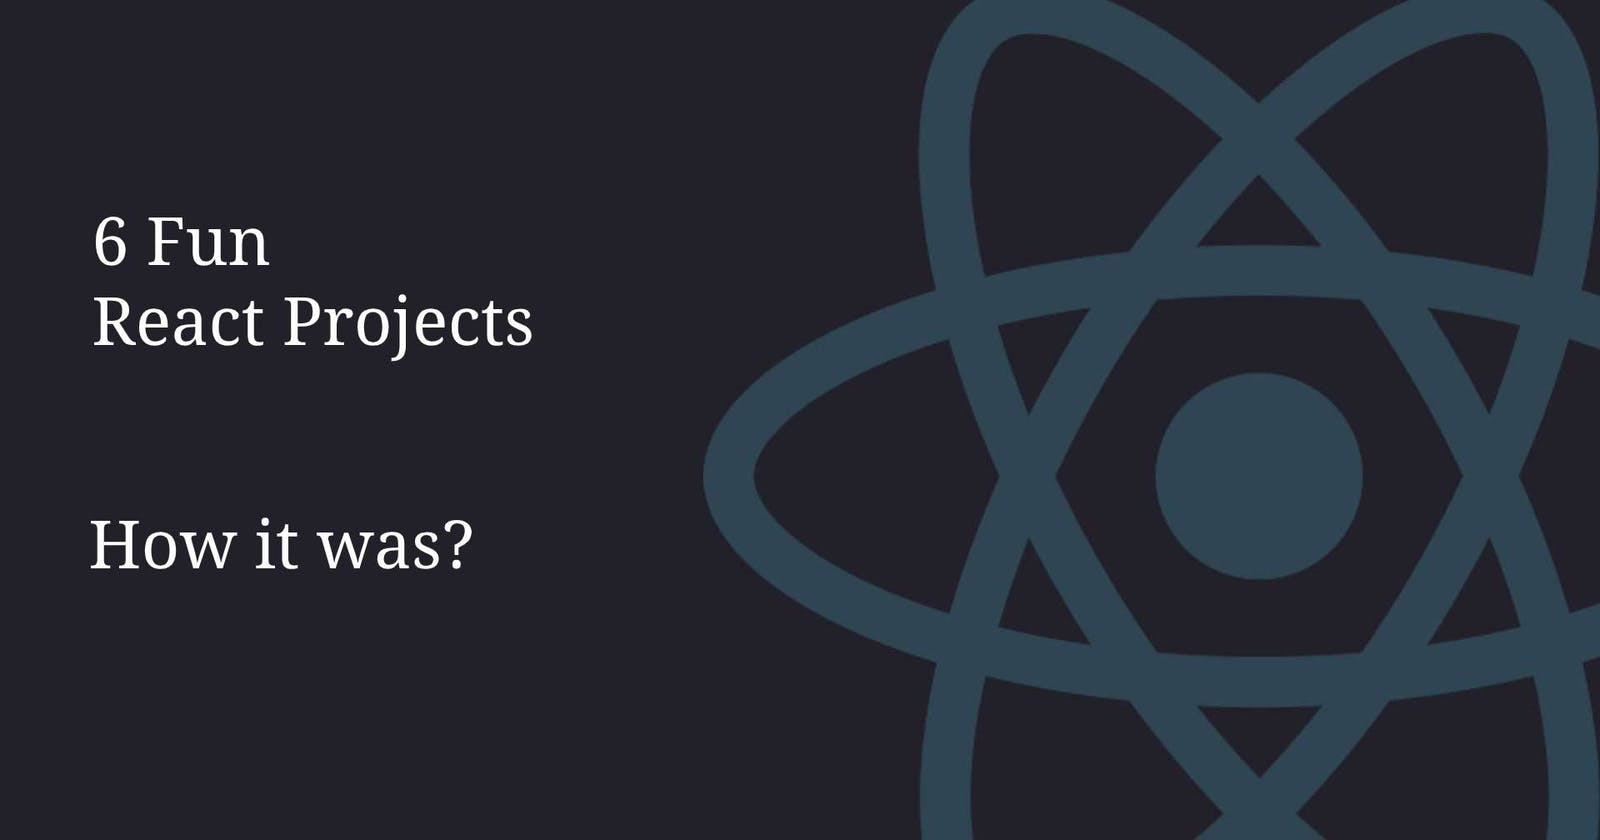 How was the challenge 6 Fun React projects